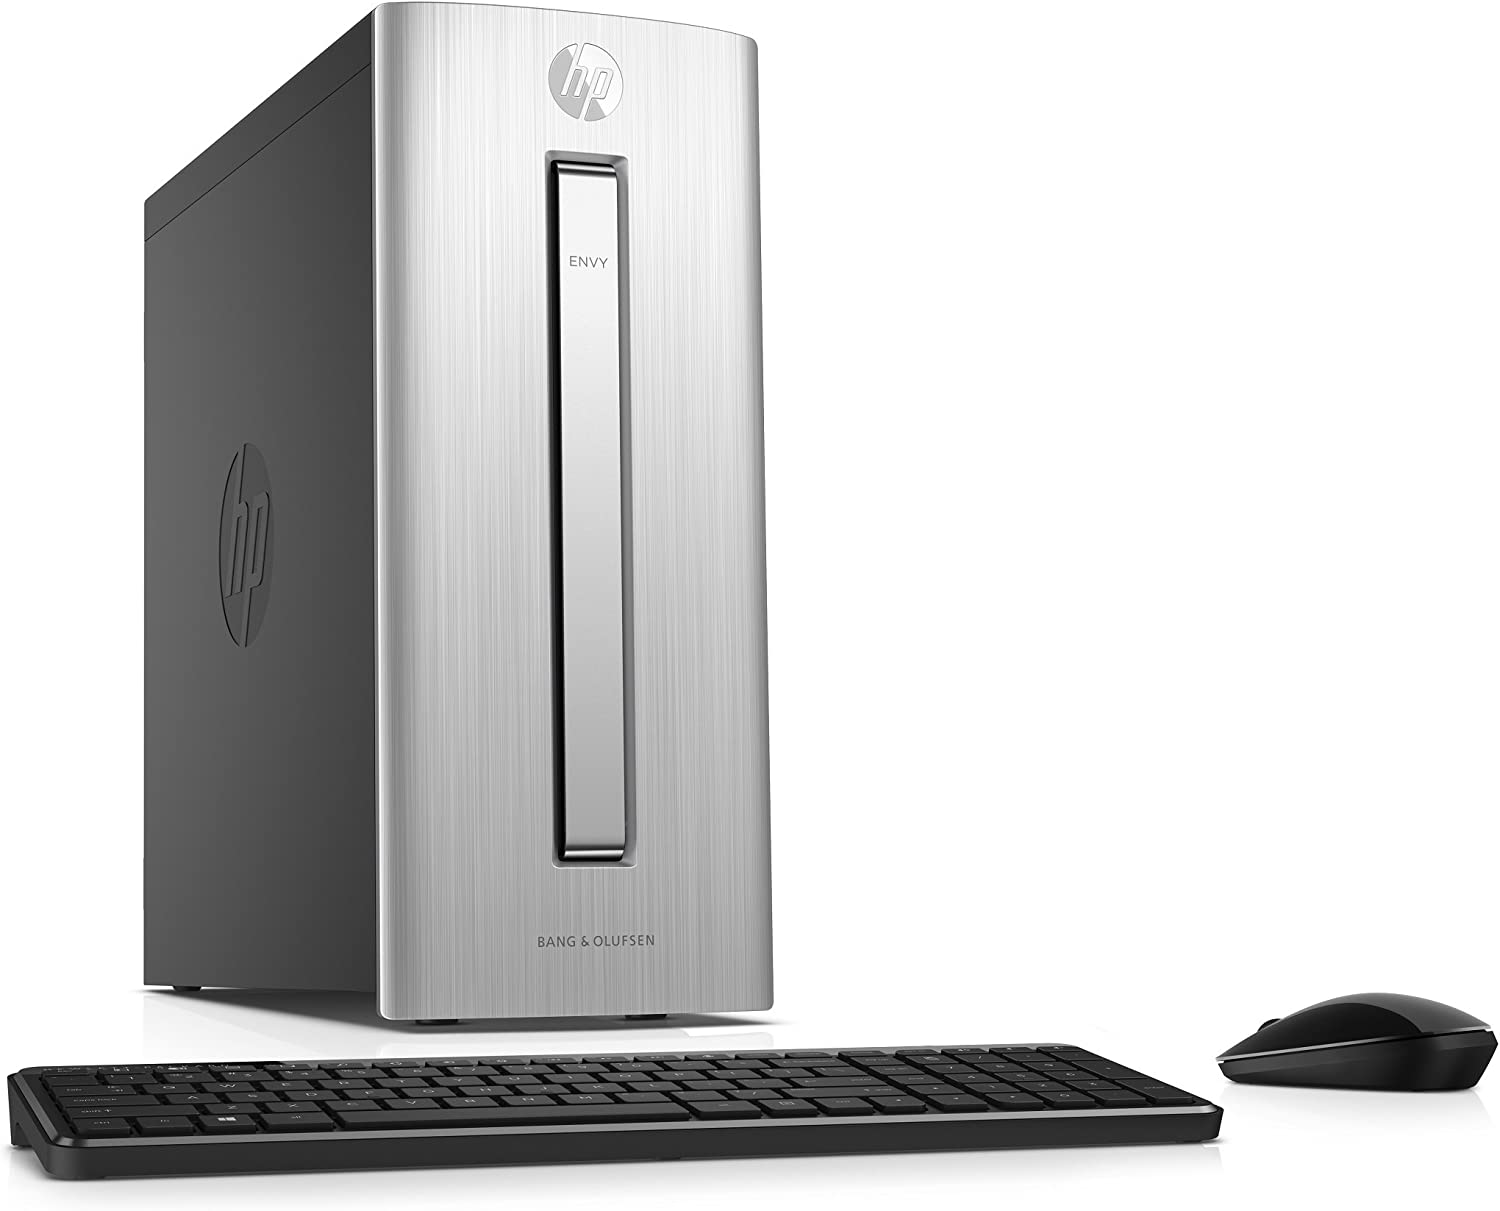 HP Envy 750-514, Intel Core i5-7400, 12GB, 128GB SSD+1TB HDD, Desktop PC (Renewed)